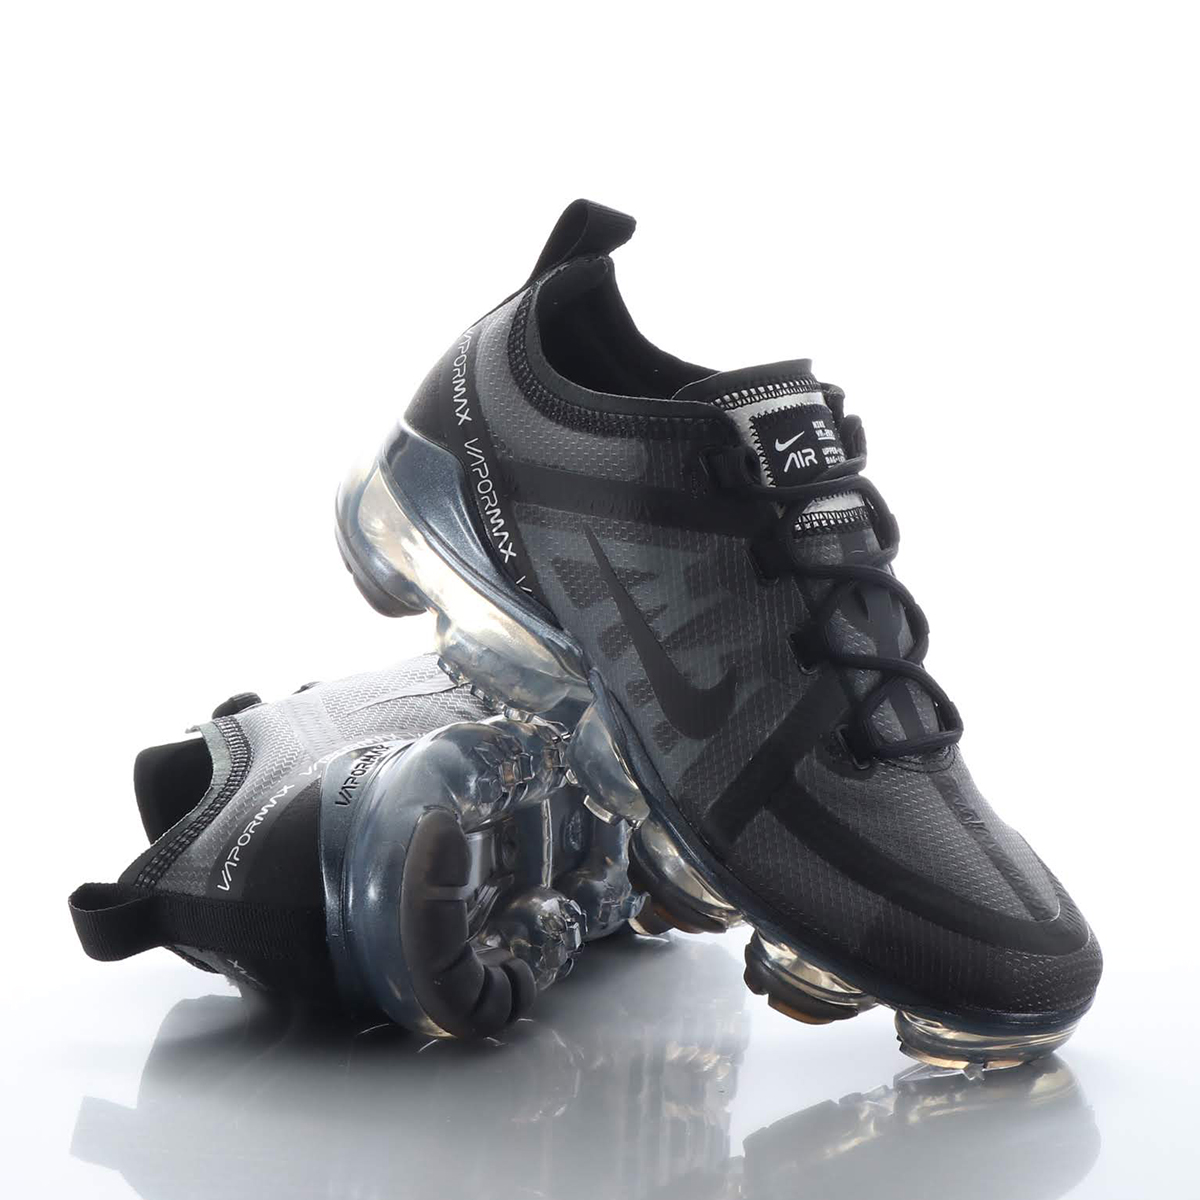 0a4c0ea1a00c Woo with advanced elasticity skills is material and the Nike air vapor max  2019 women running shoes wrap up a foot